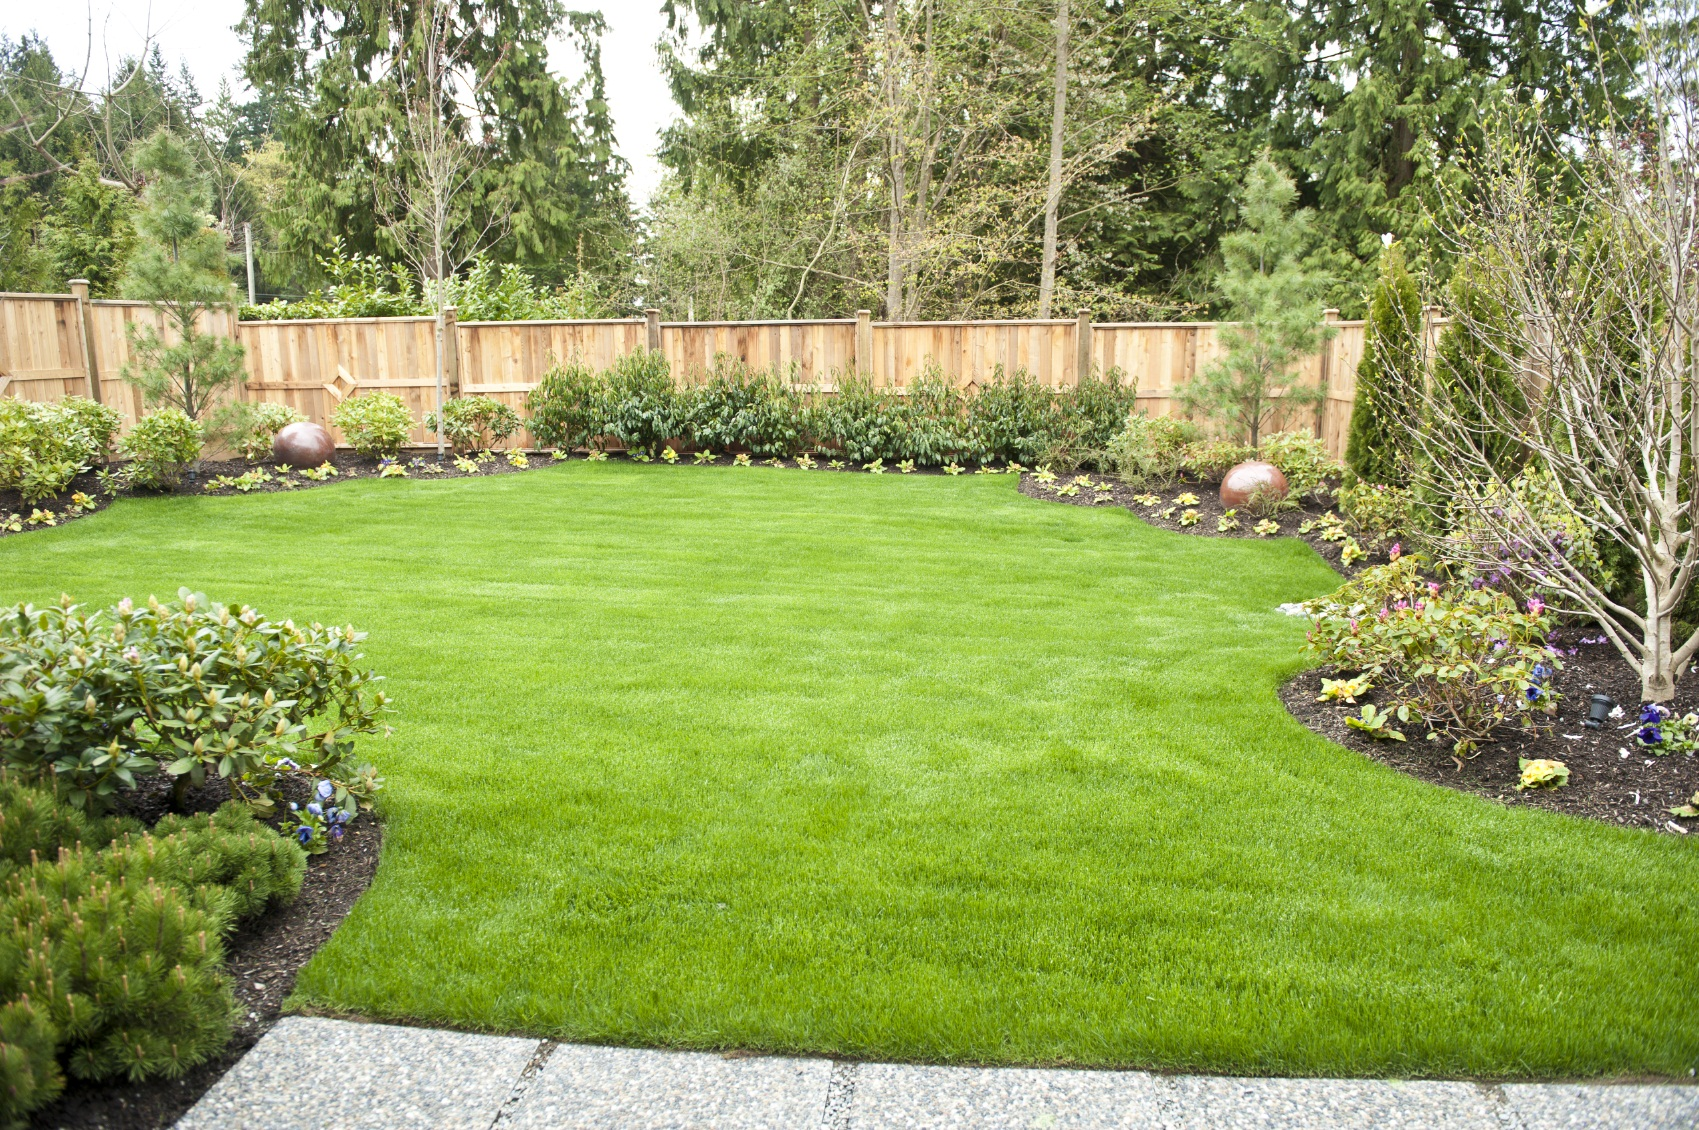 Backyard landscaping for privacy large and beautiful for Backyard privacy landscaping trees